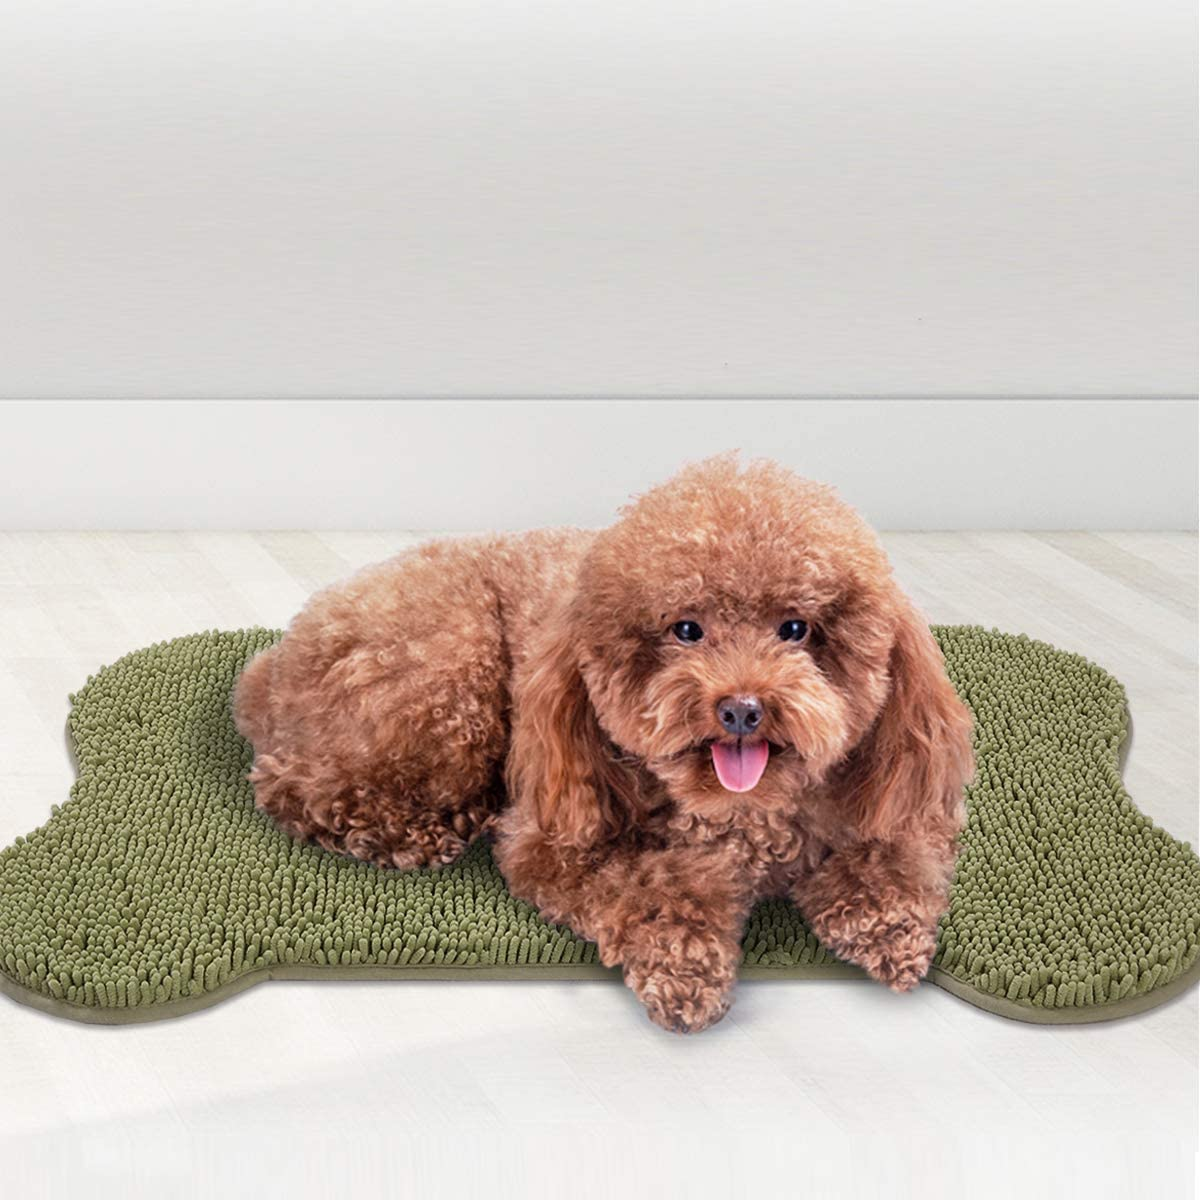 MAYSHINE Shaggy Pet Area Rug Dog Bone Shaped Mat Comfortable Dog Bed Machine-Washable Durable Absorb Mud and Dirt Keep Your House Clean 24X39 inch, Sage Green